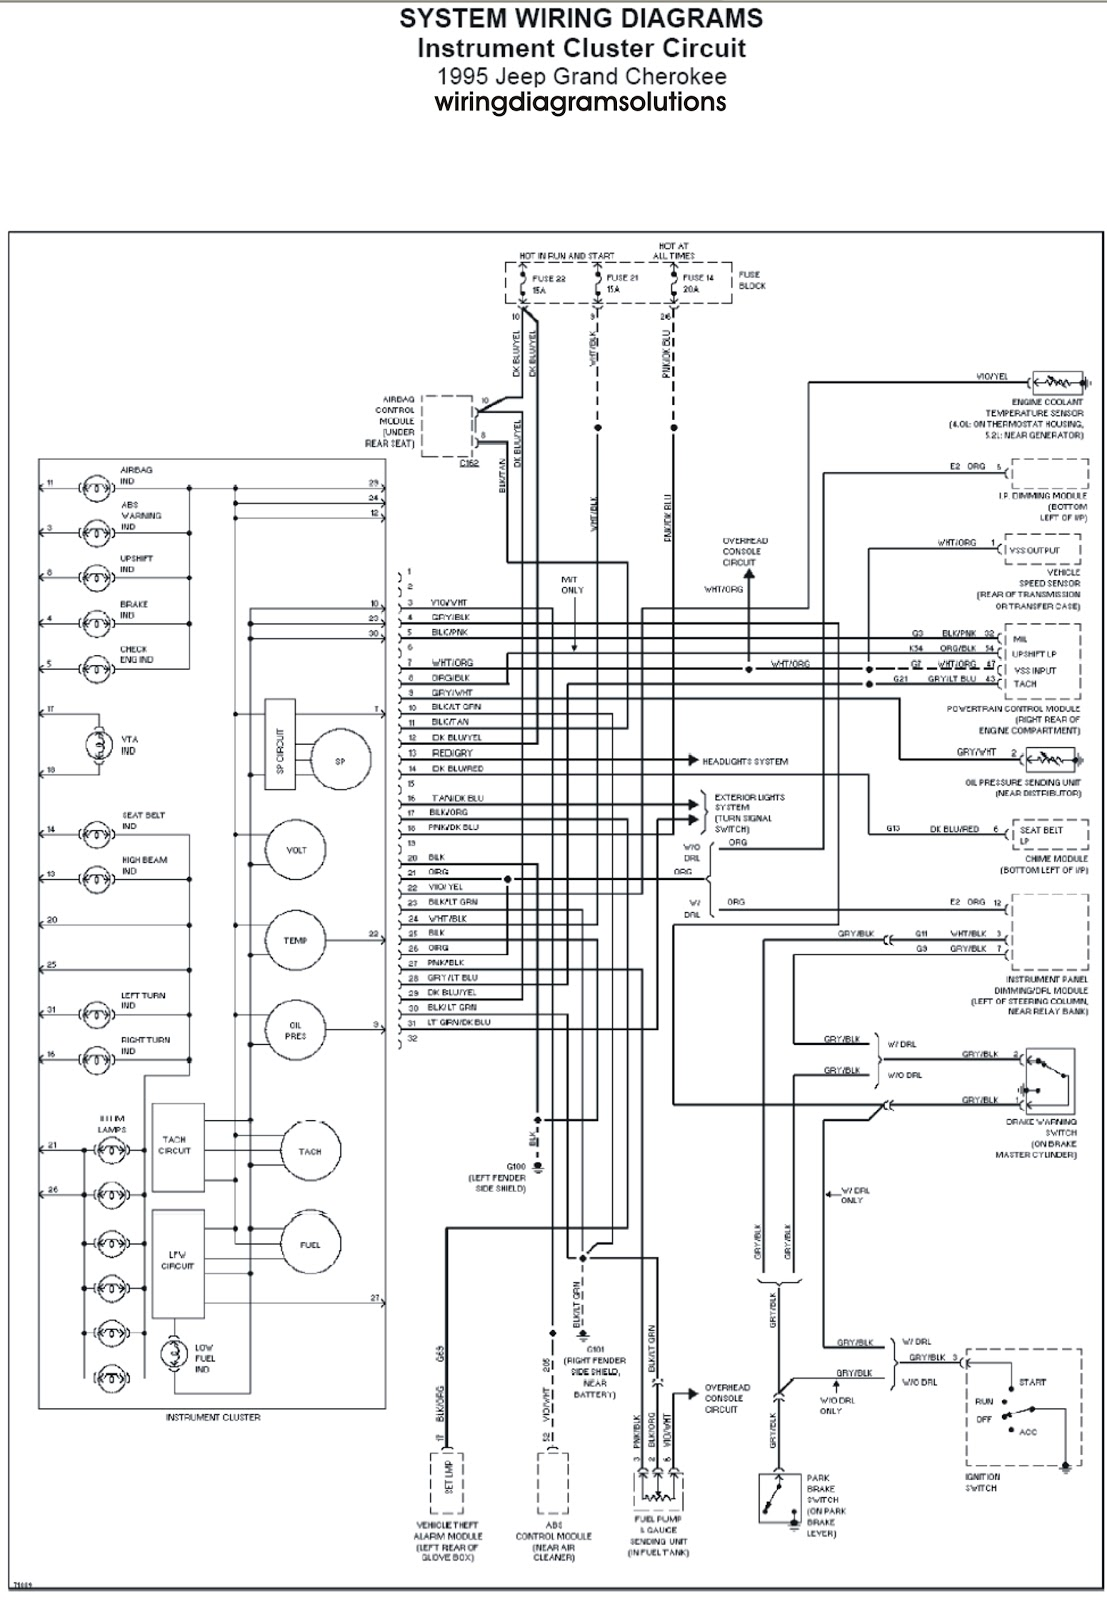 1998 Jeep 4 0 Wiring Schematic Simple Wiring Diagram Jeep Grand Cherokee  4.0 Engine 1999 Grand Cherokee Engine Diagram